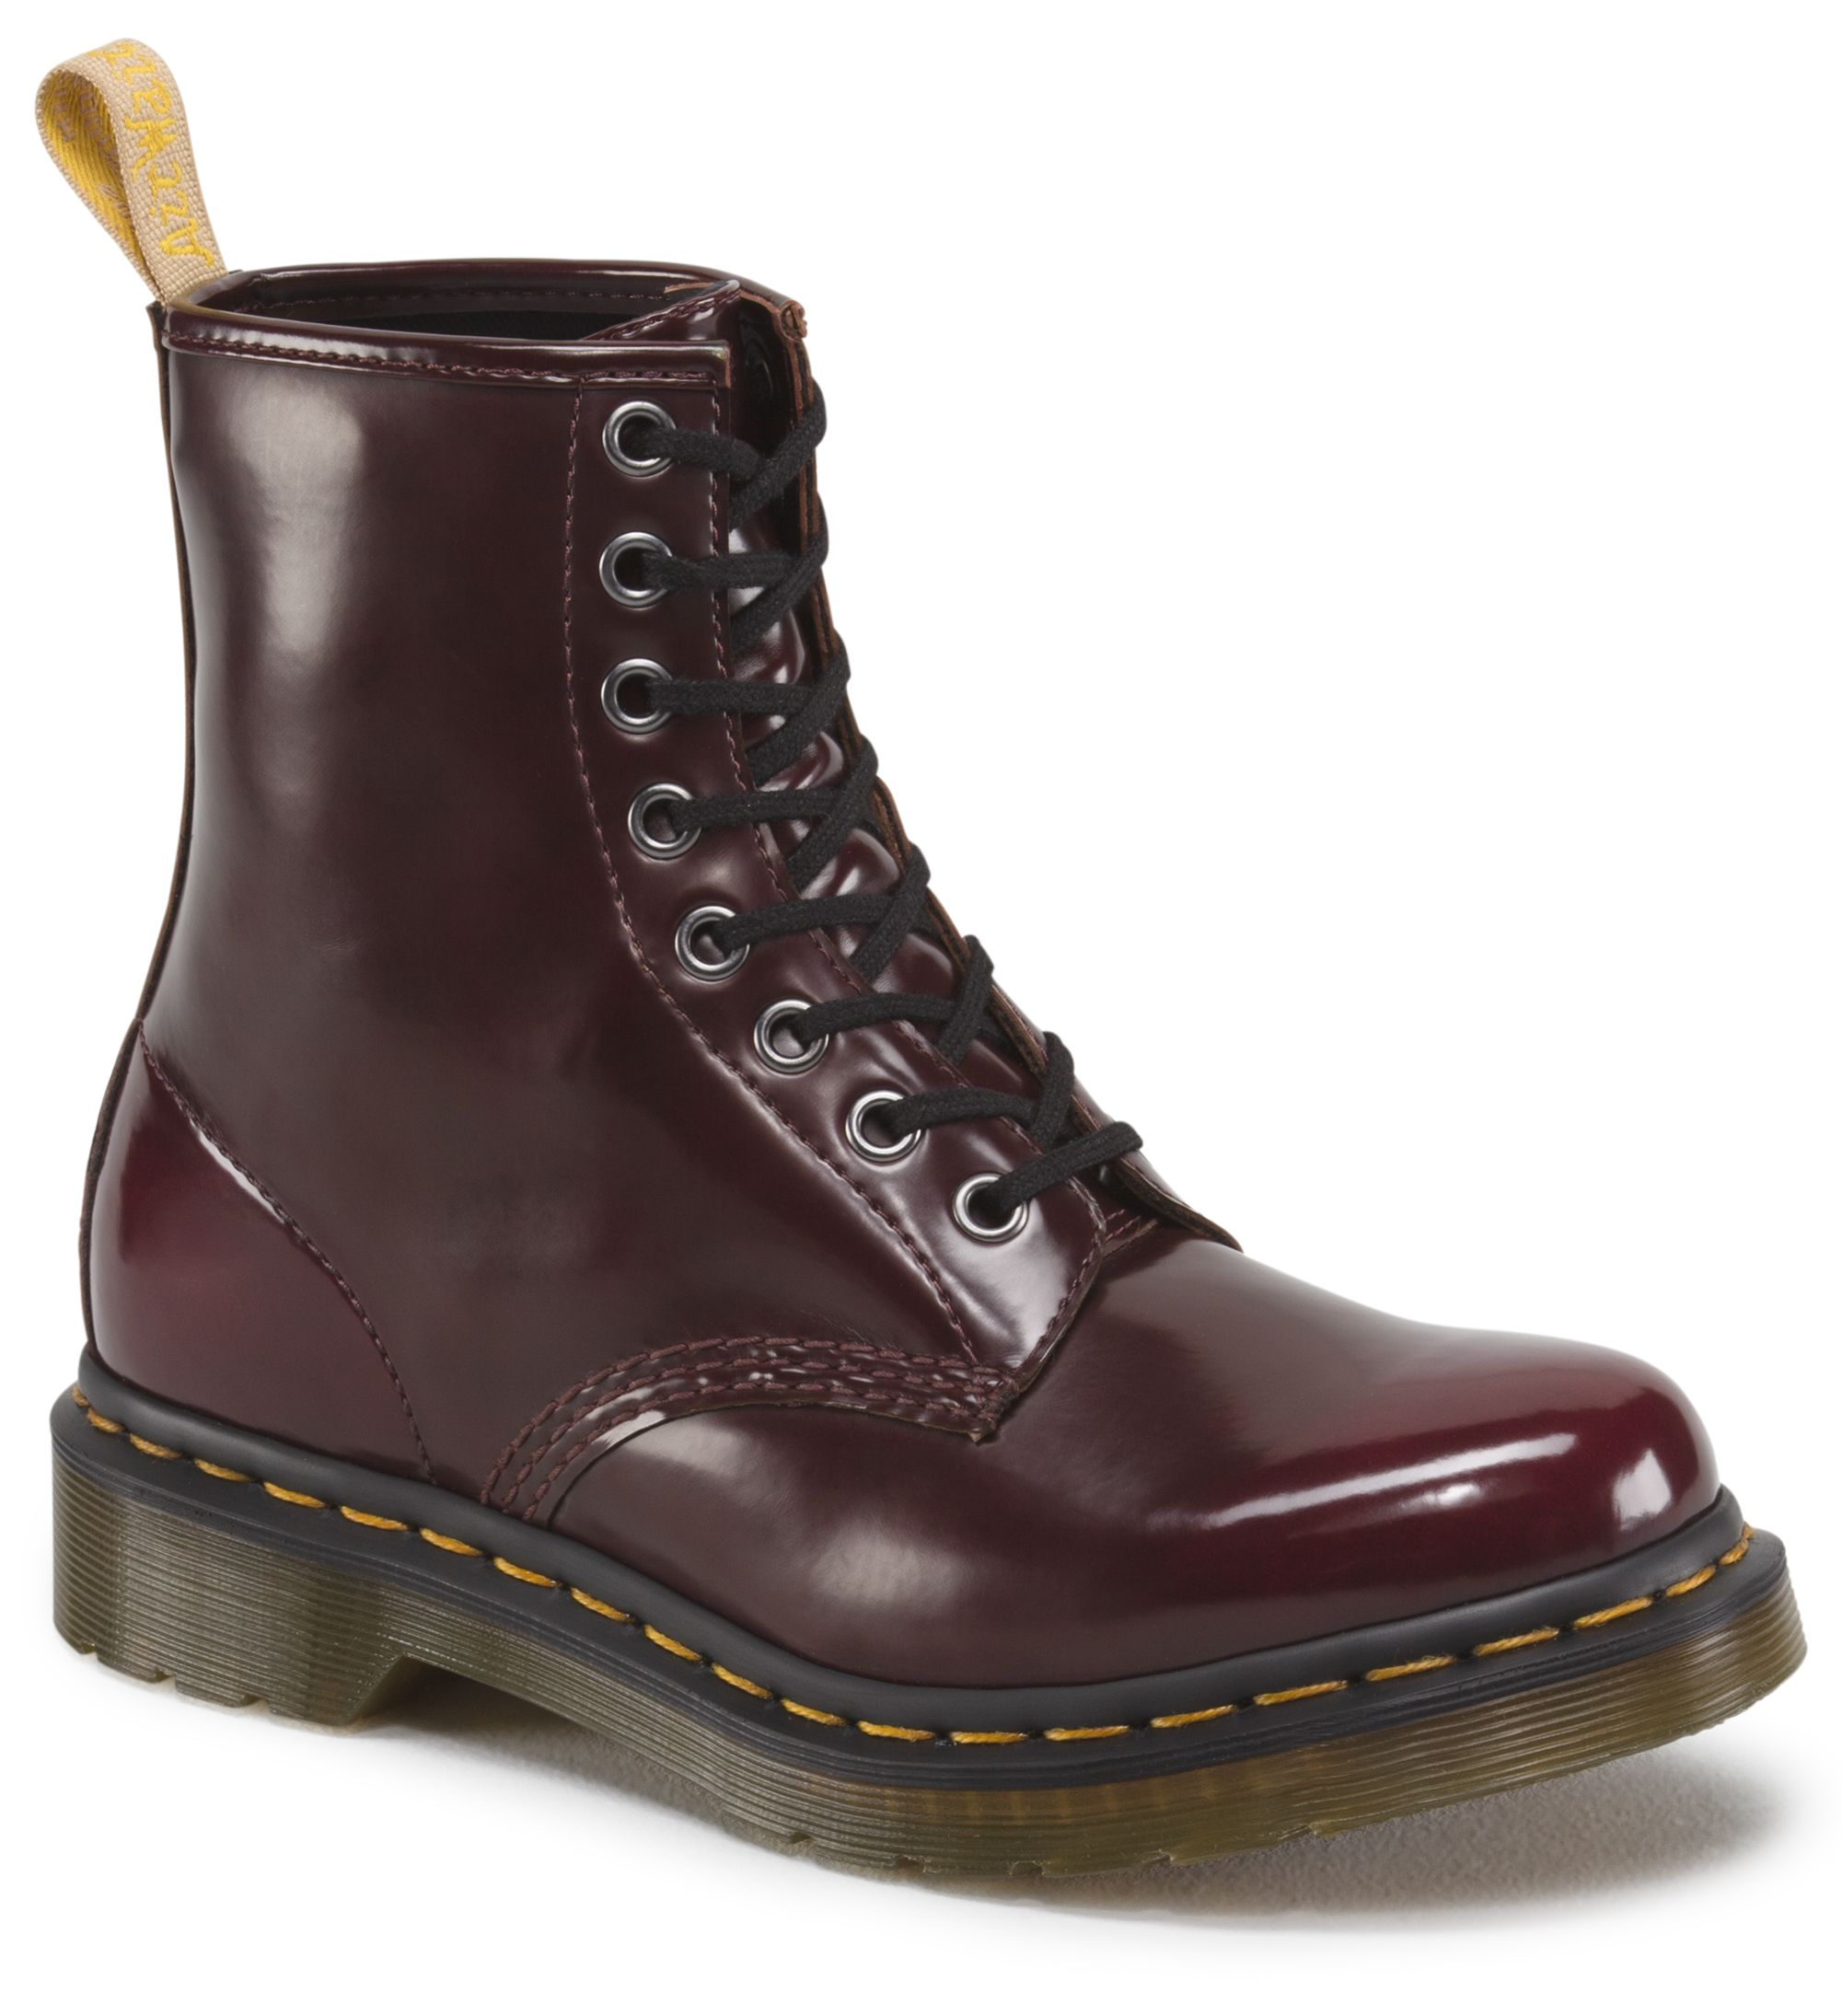 Dr. Martens Vegan Boots Recalled by Airwair Due to Chemical Exposure ... fdf92baa92ad